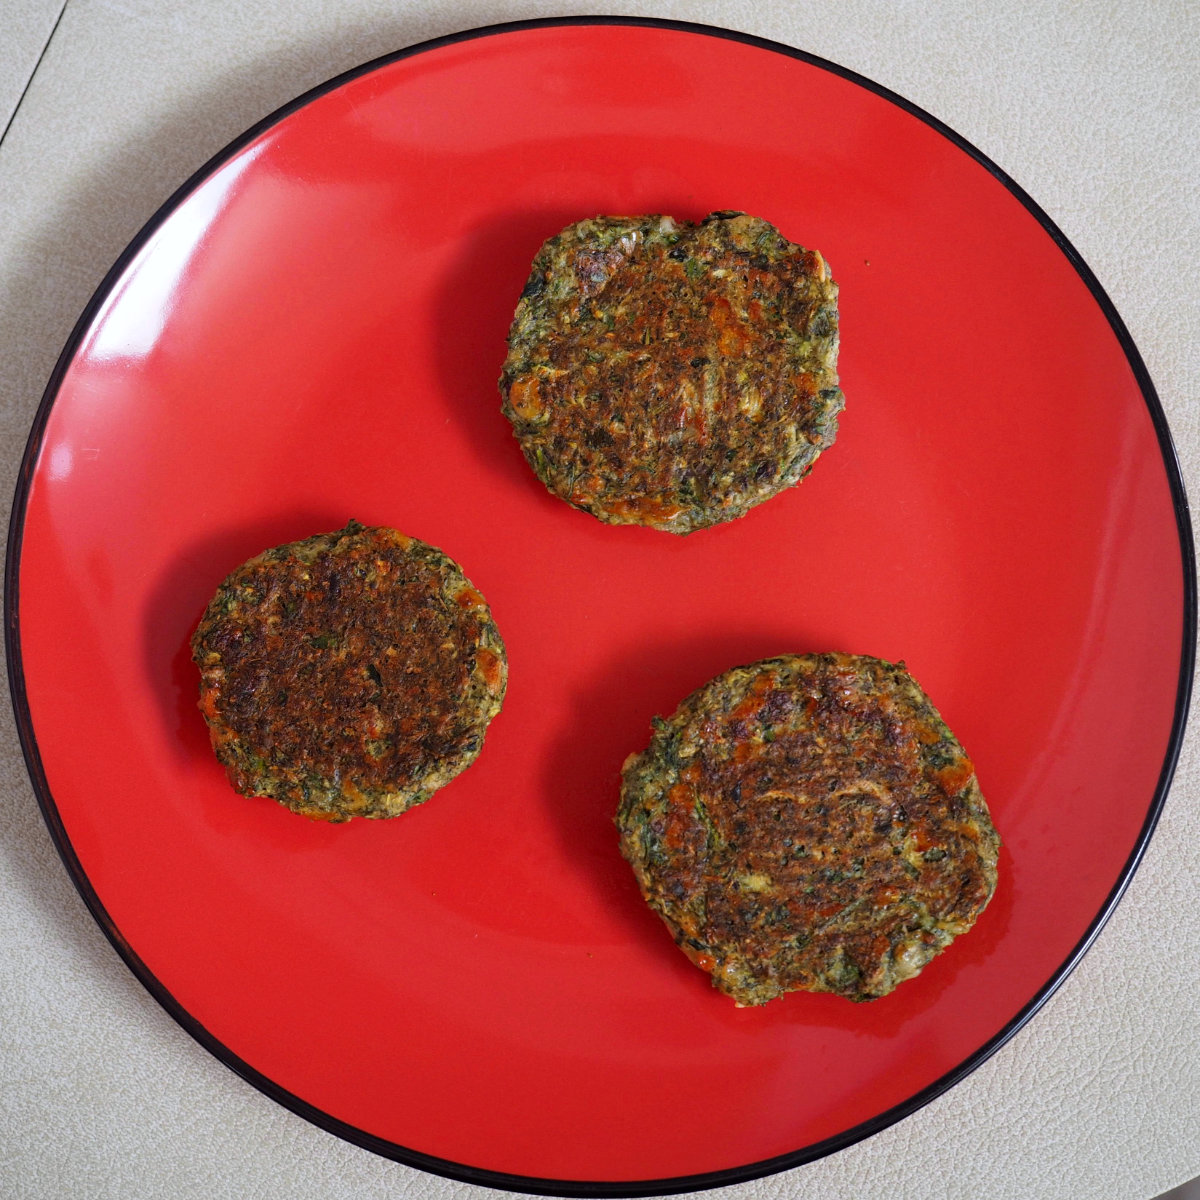 Bakes courgette balls